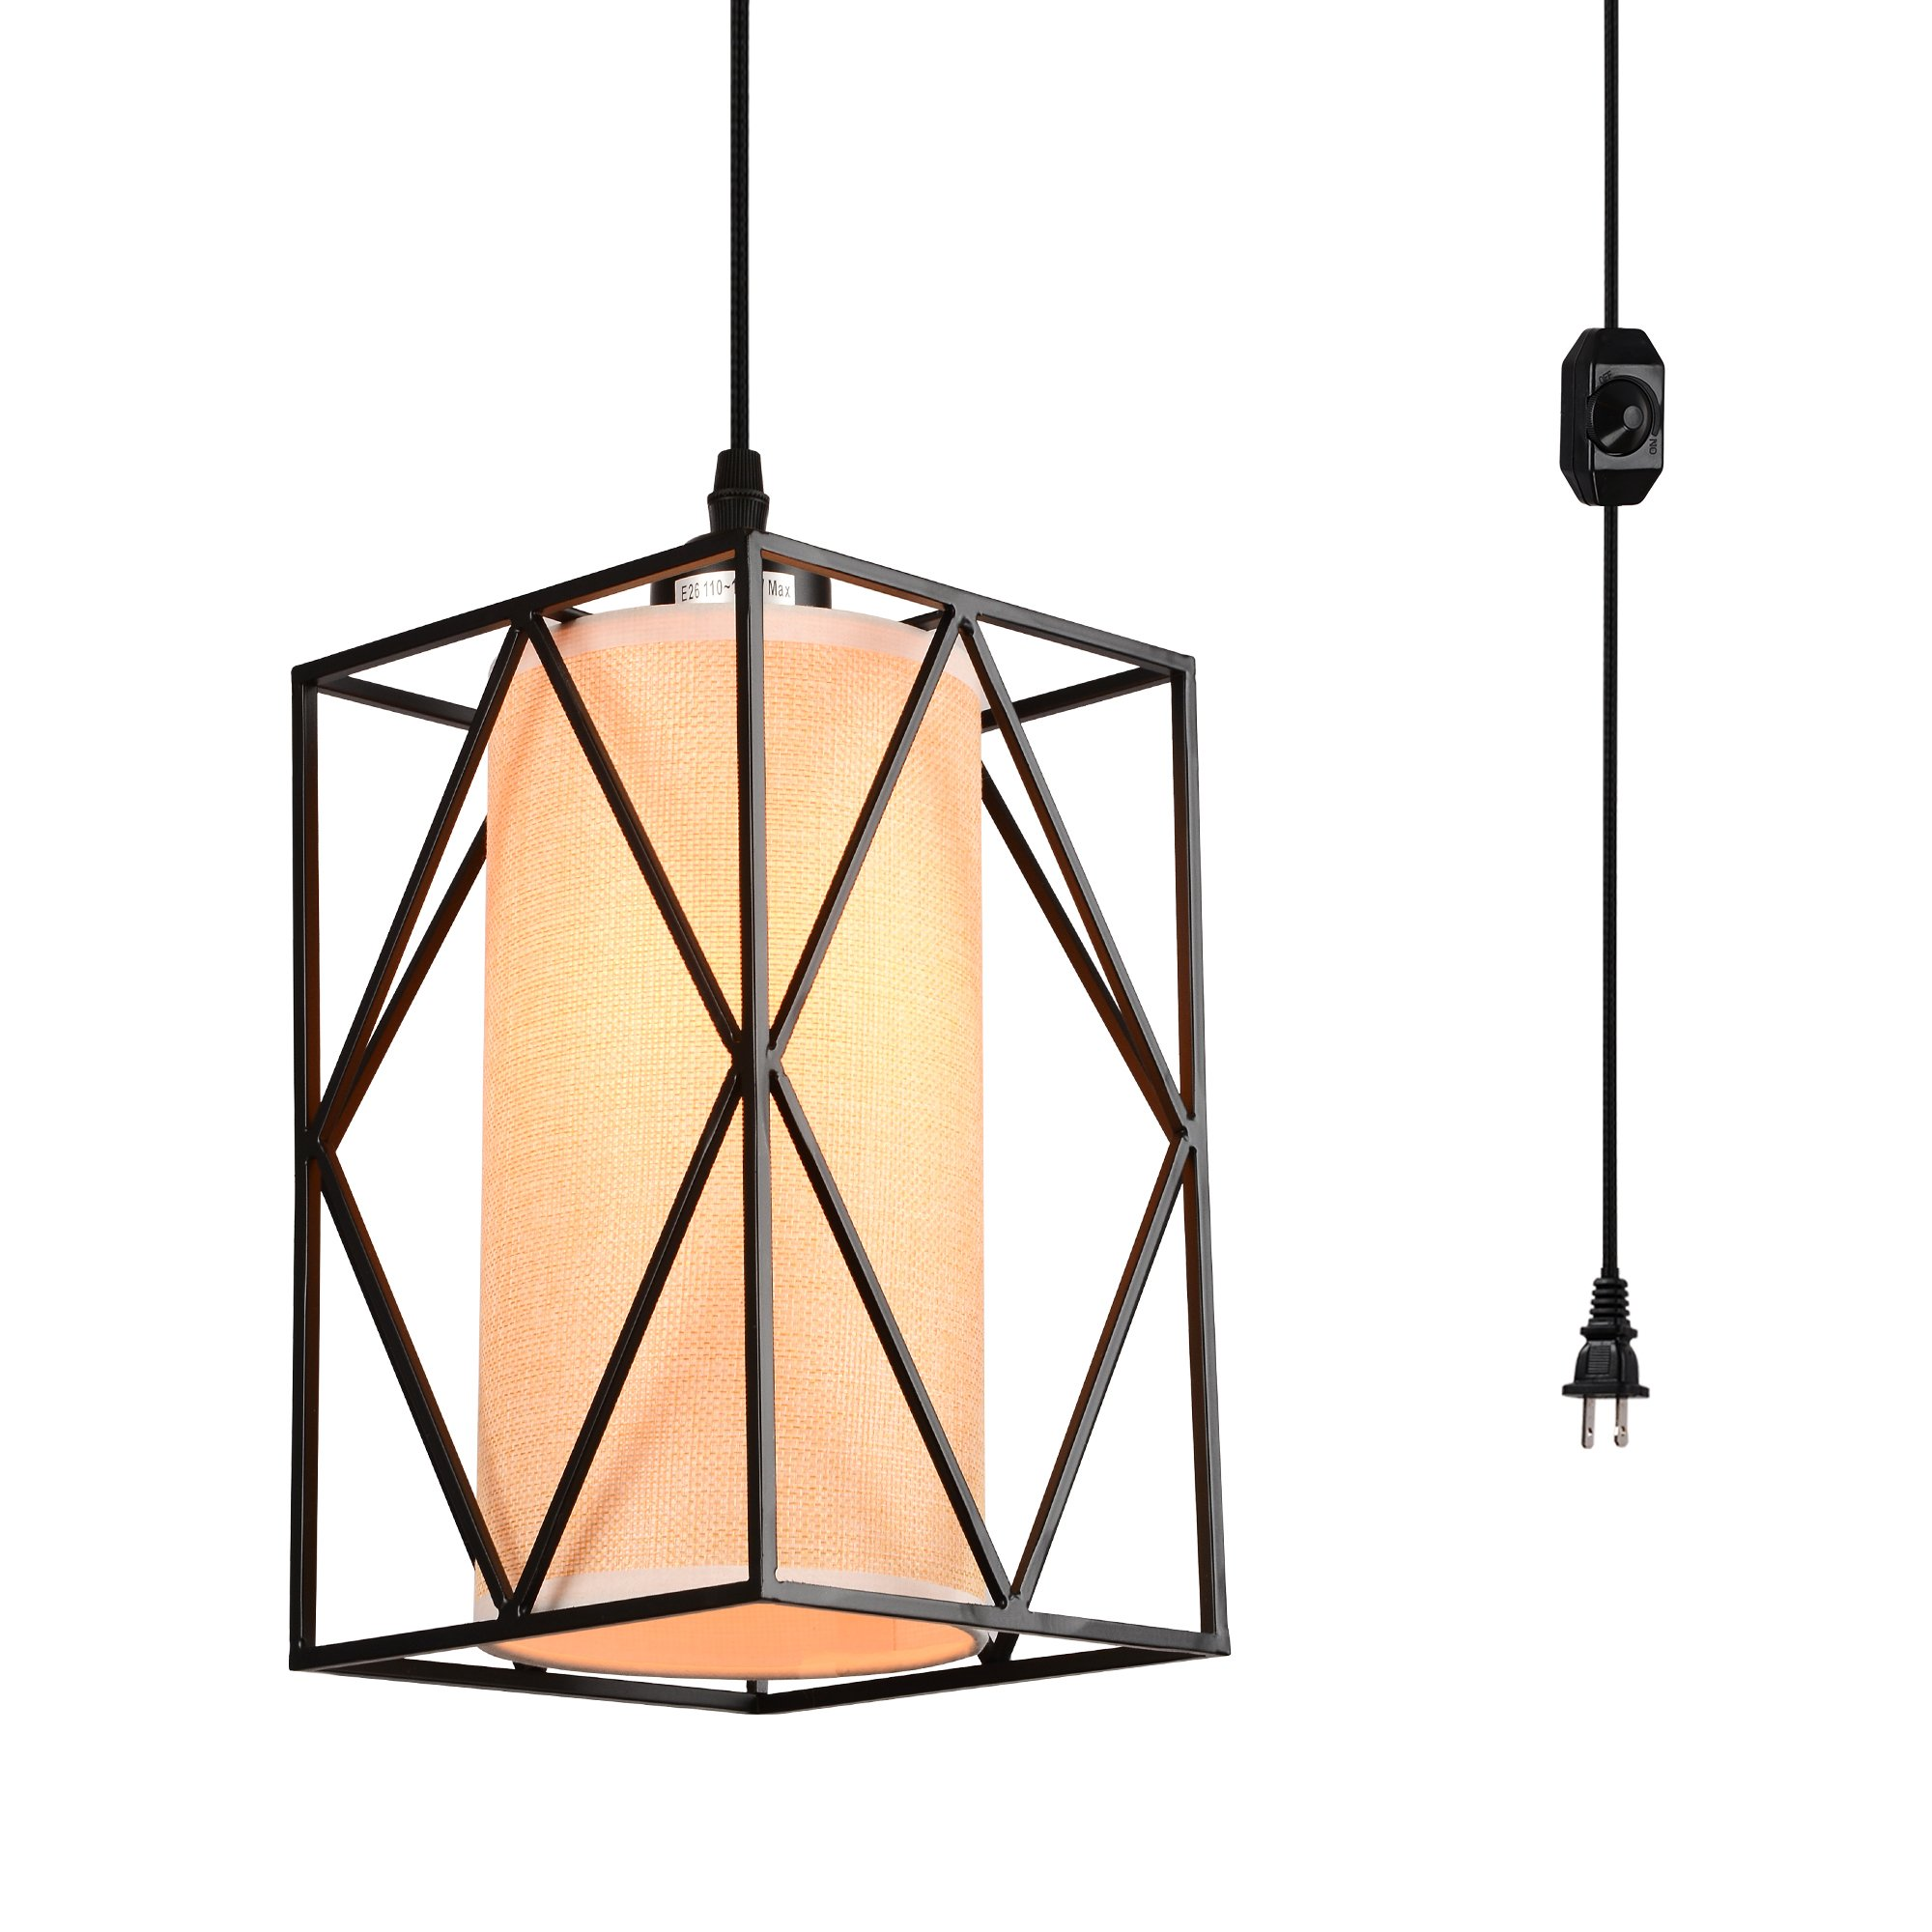 HMVPL Swag Pendant Lights with Plug in Cord and On/Off Dimmer Switch, New Transitional Hanging Ceiling Lamps with Linen Lampshade for Kitchen Island, Dining Room, Living Room, Bed Room by HMVPL